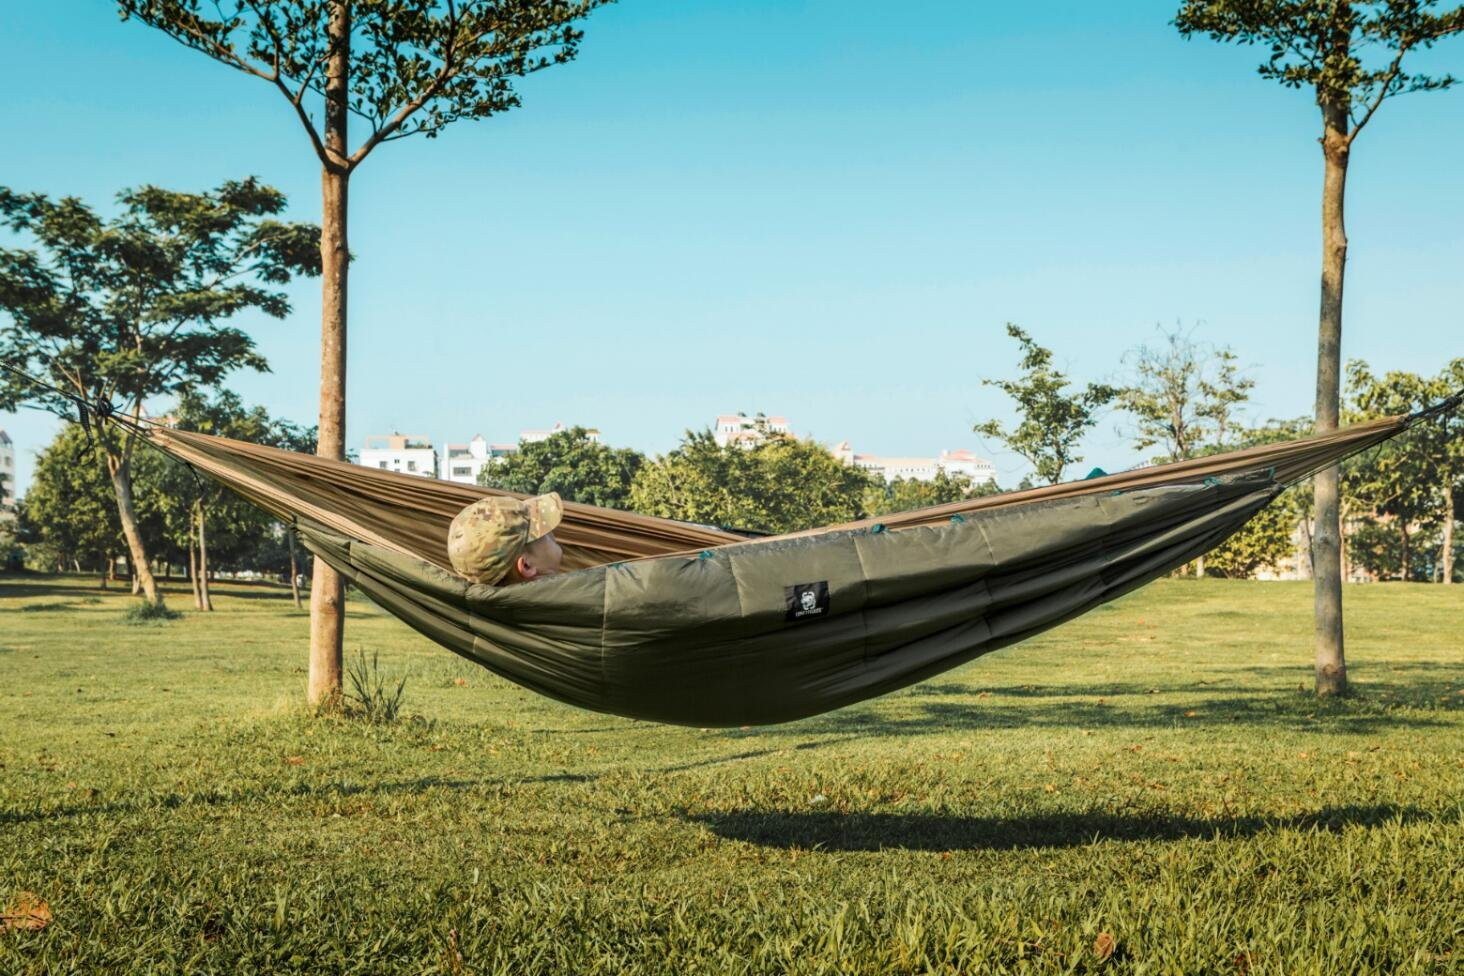 Onetigris Winter Hammock Under-quilt Goose Down Full Length Hammock Underquilt Under Blanket 23 F To 1.4 F Camping & Hiking -5 C To -17 C